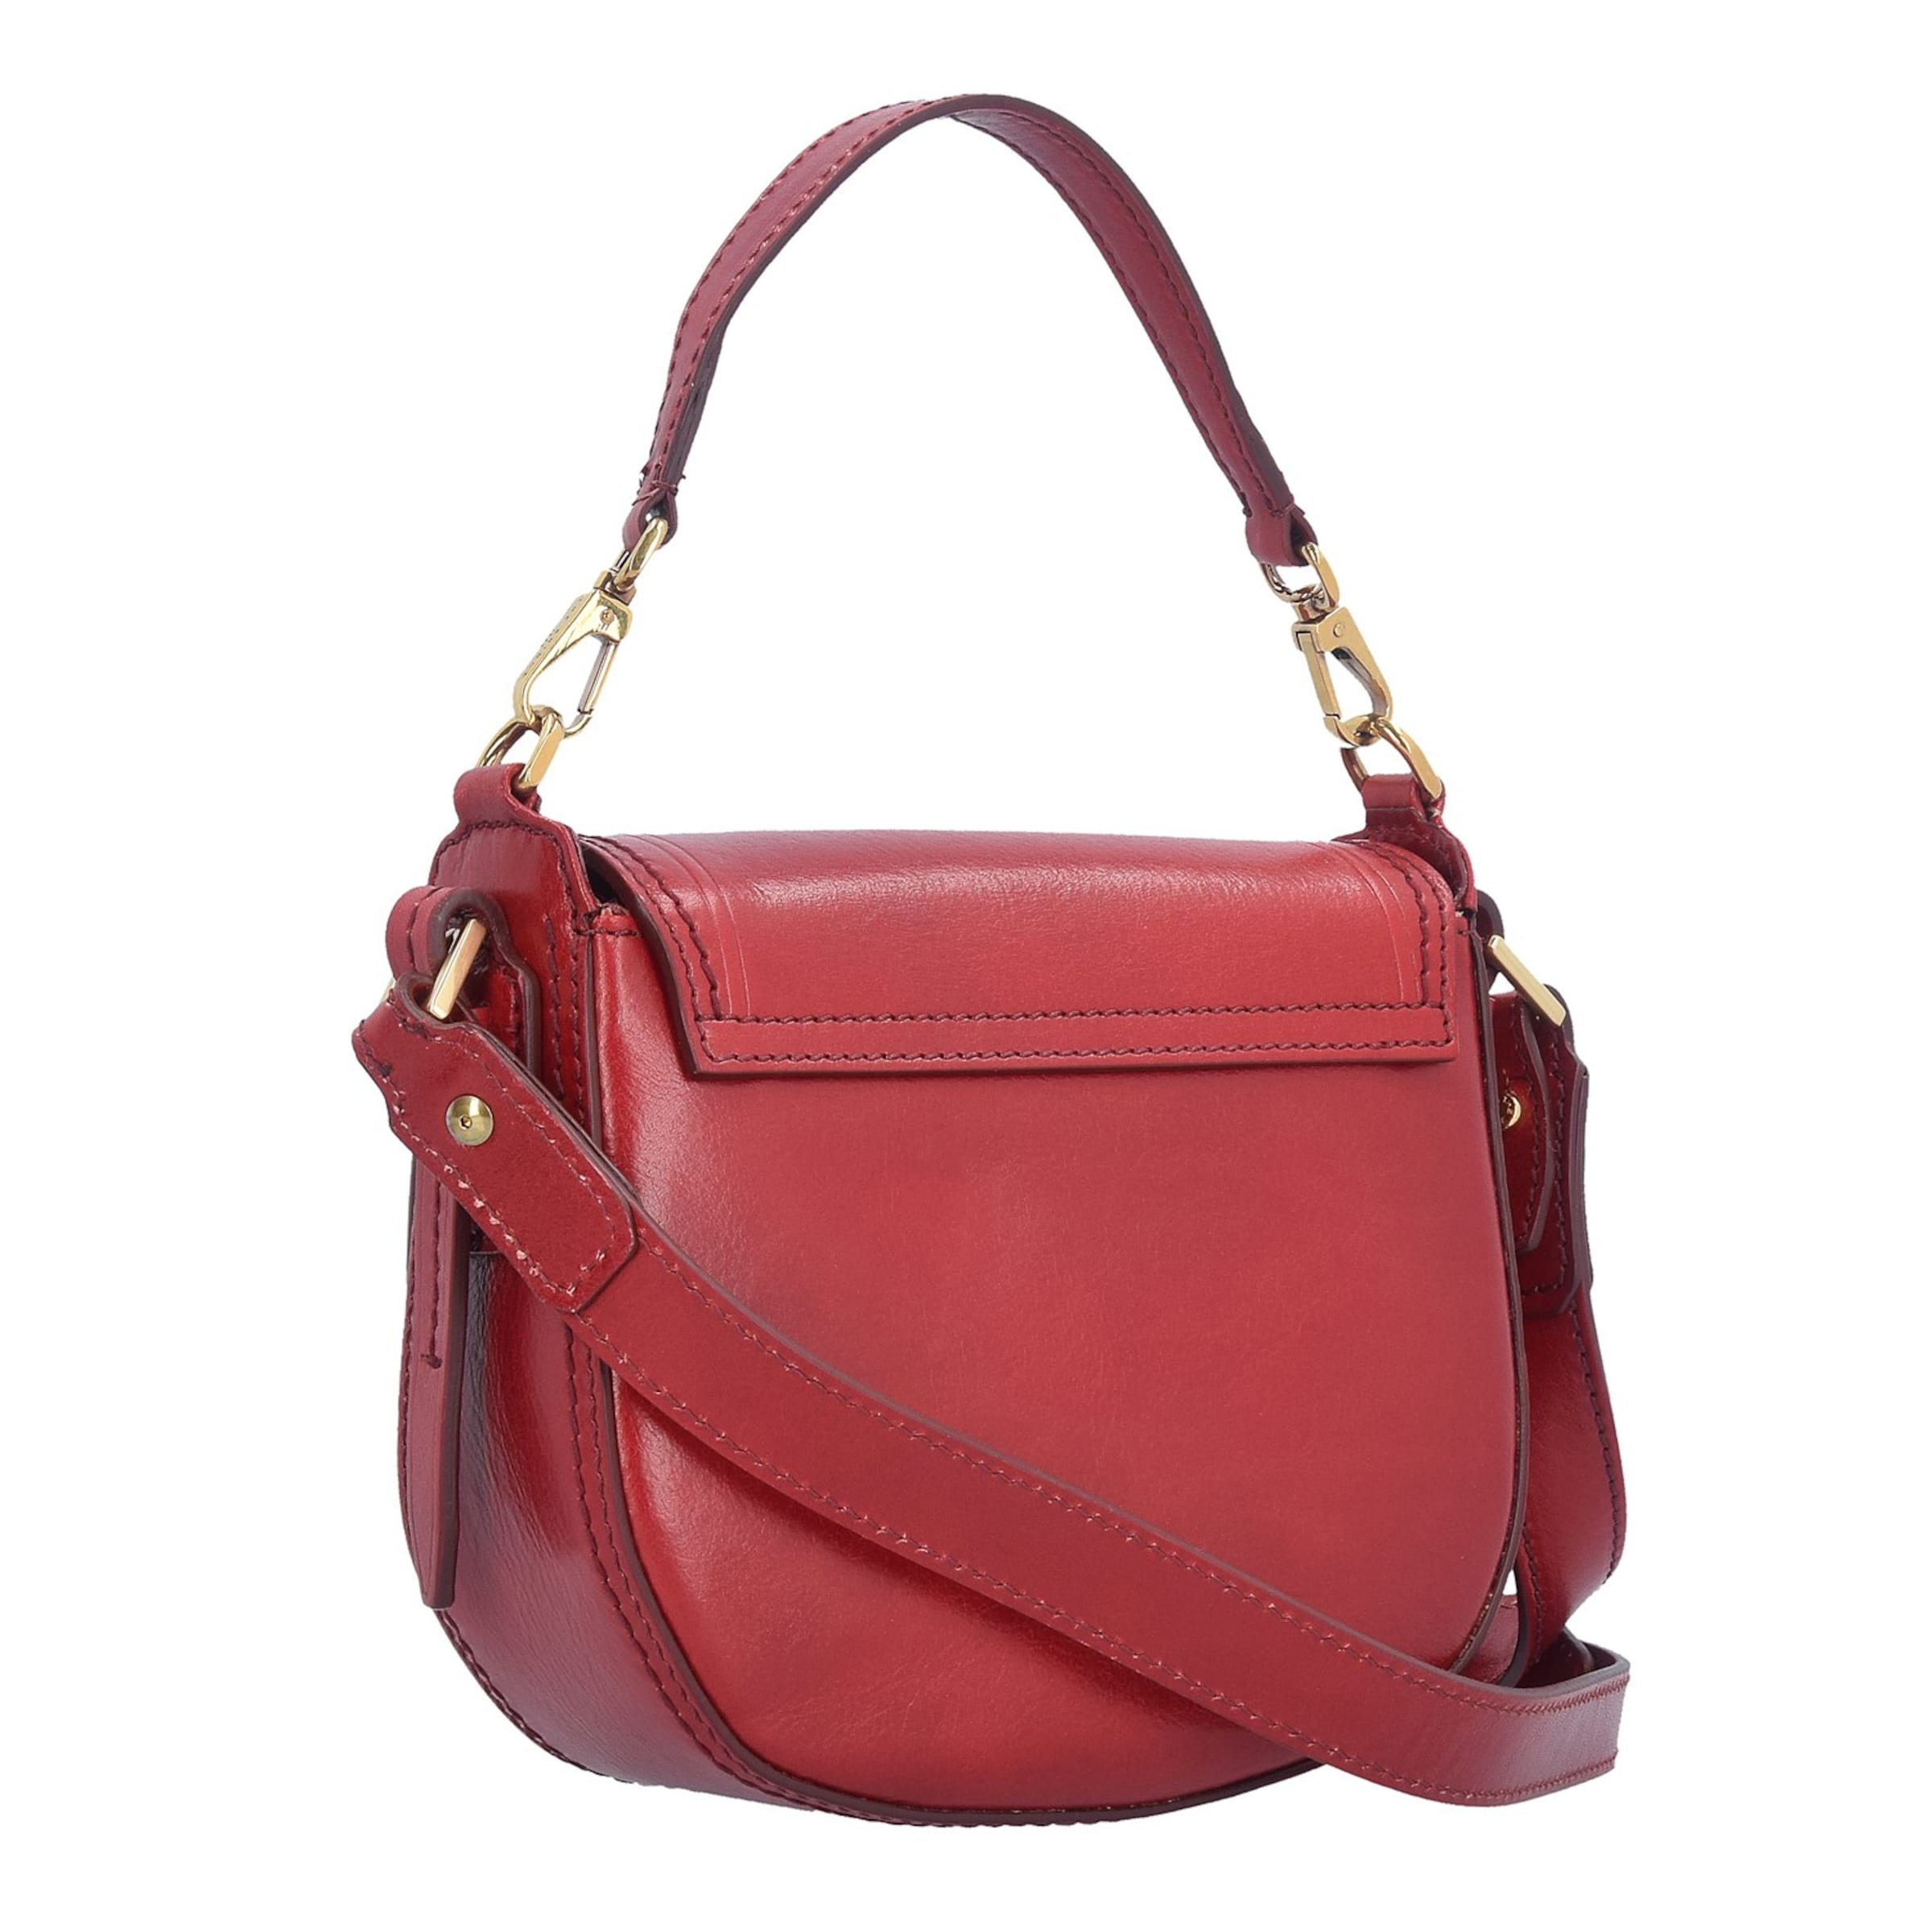 The 20 Handtasche Bridge Leder In Pearldistrict Cm Rot O8P0wkn